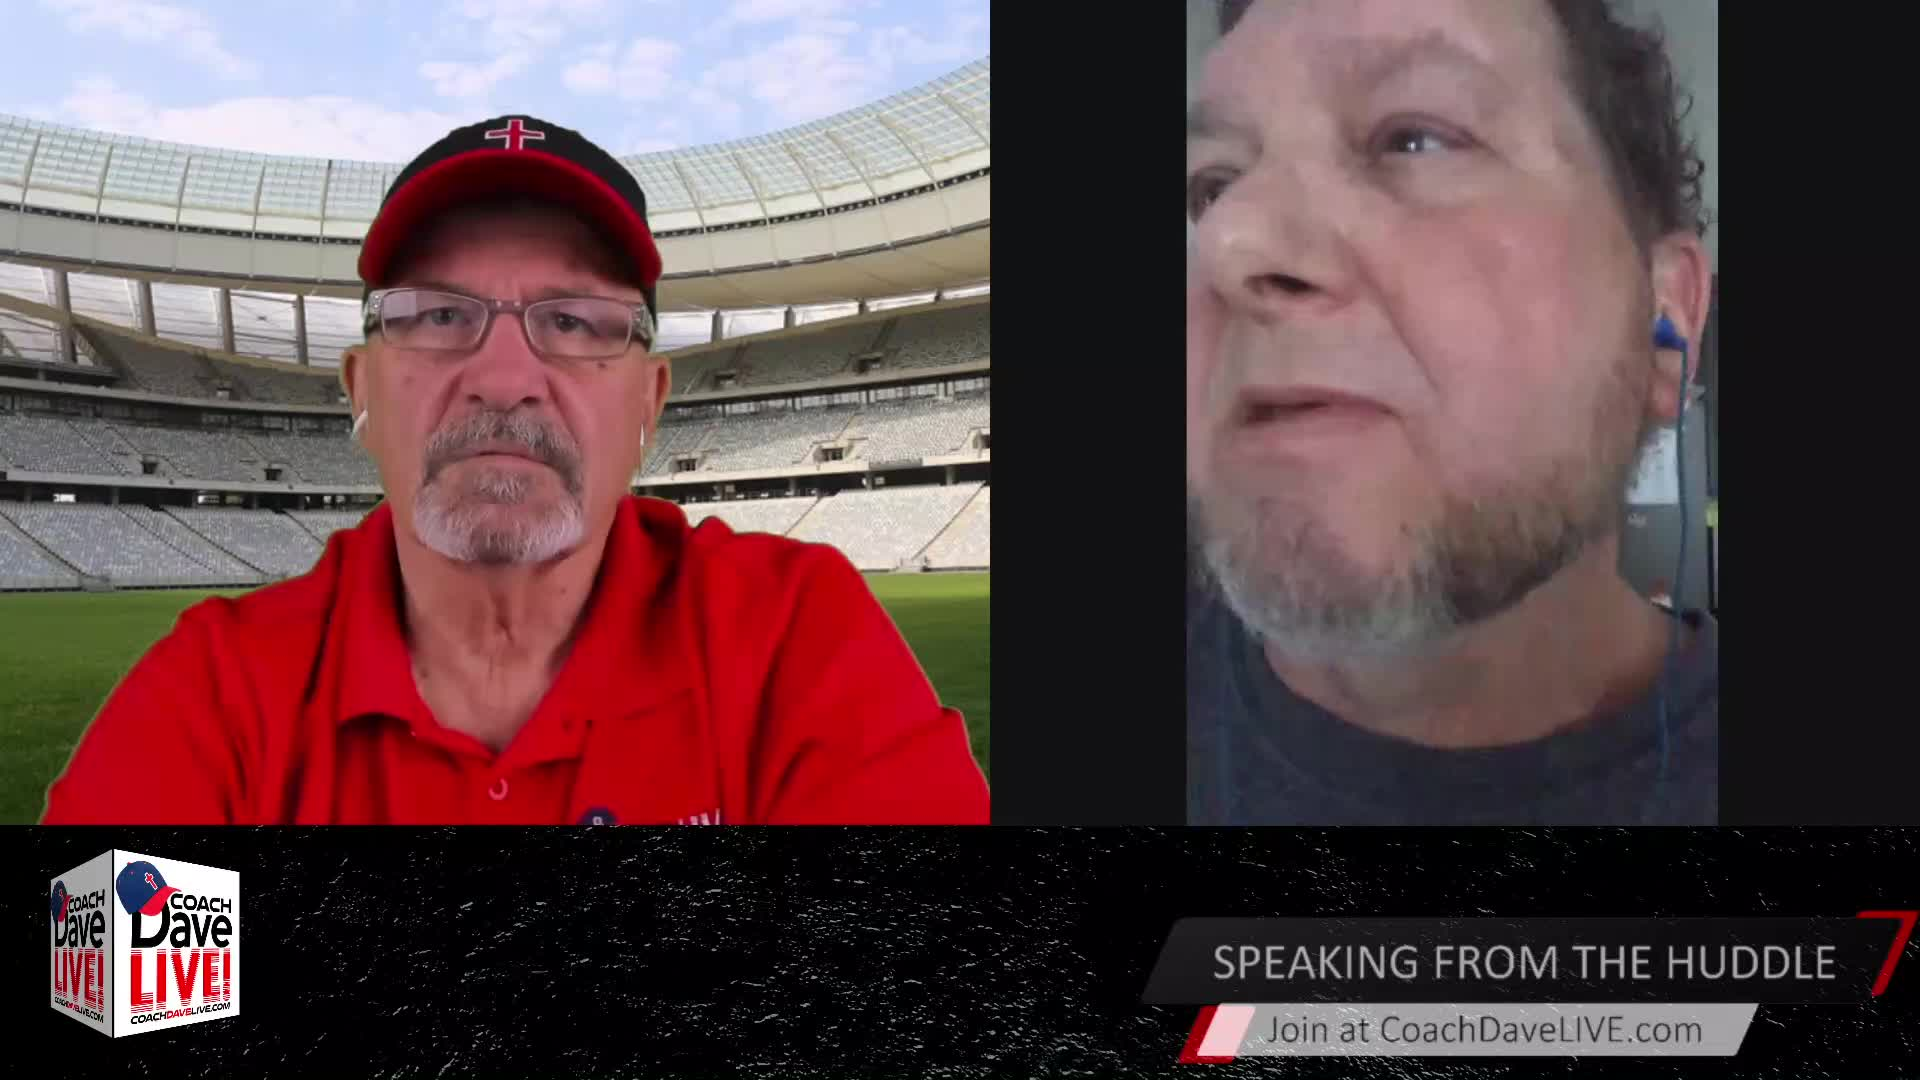 Coach Dave LIVE   4-16-2021   FLEA FLICKER FRIDAY: DOC MARQUIS AND MORE COVID LIES - AUDIO ONLY